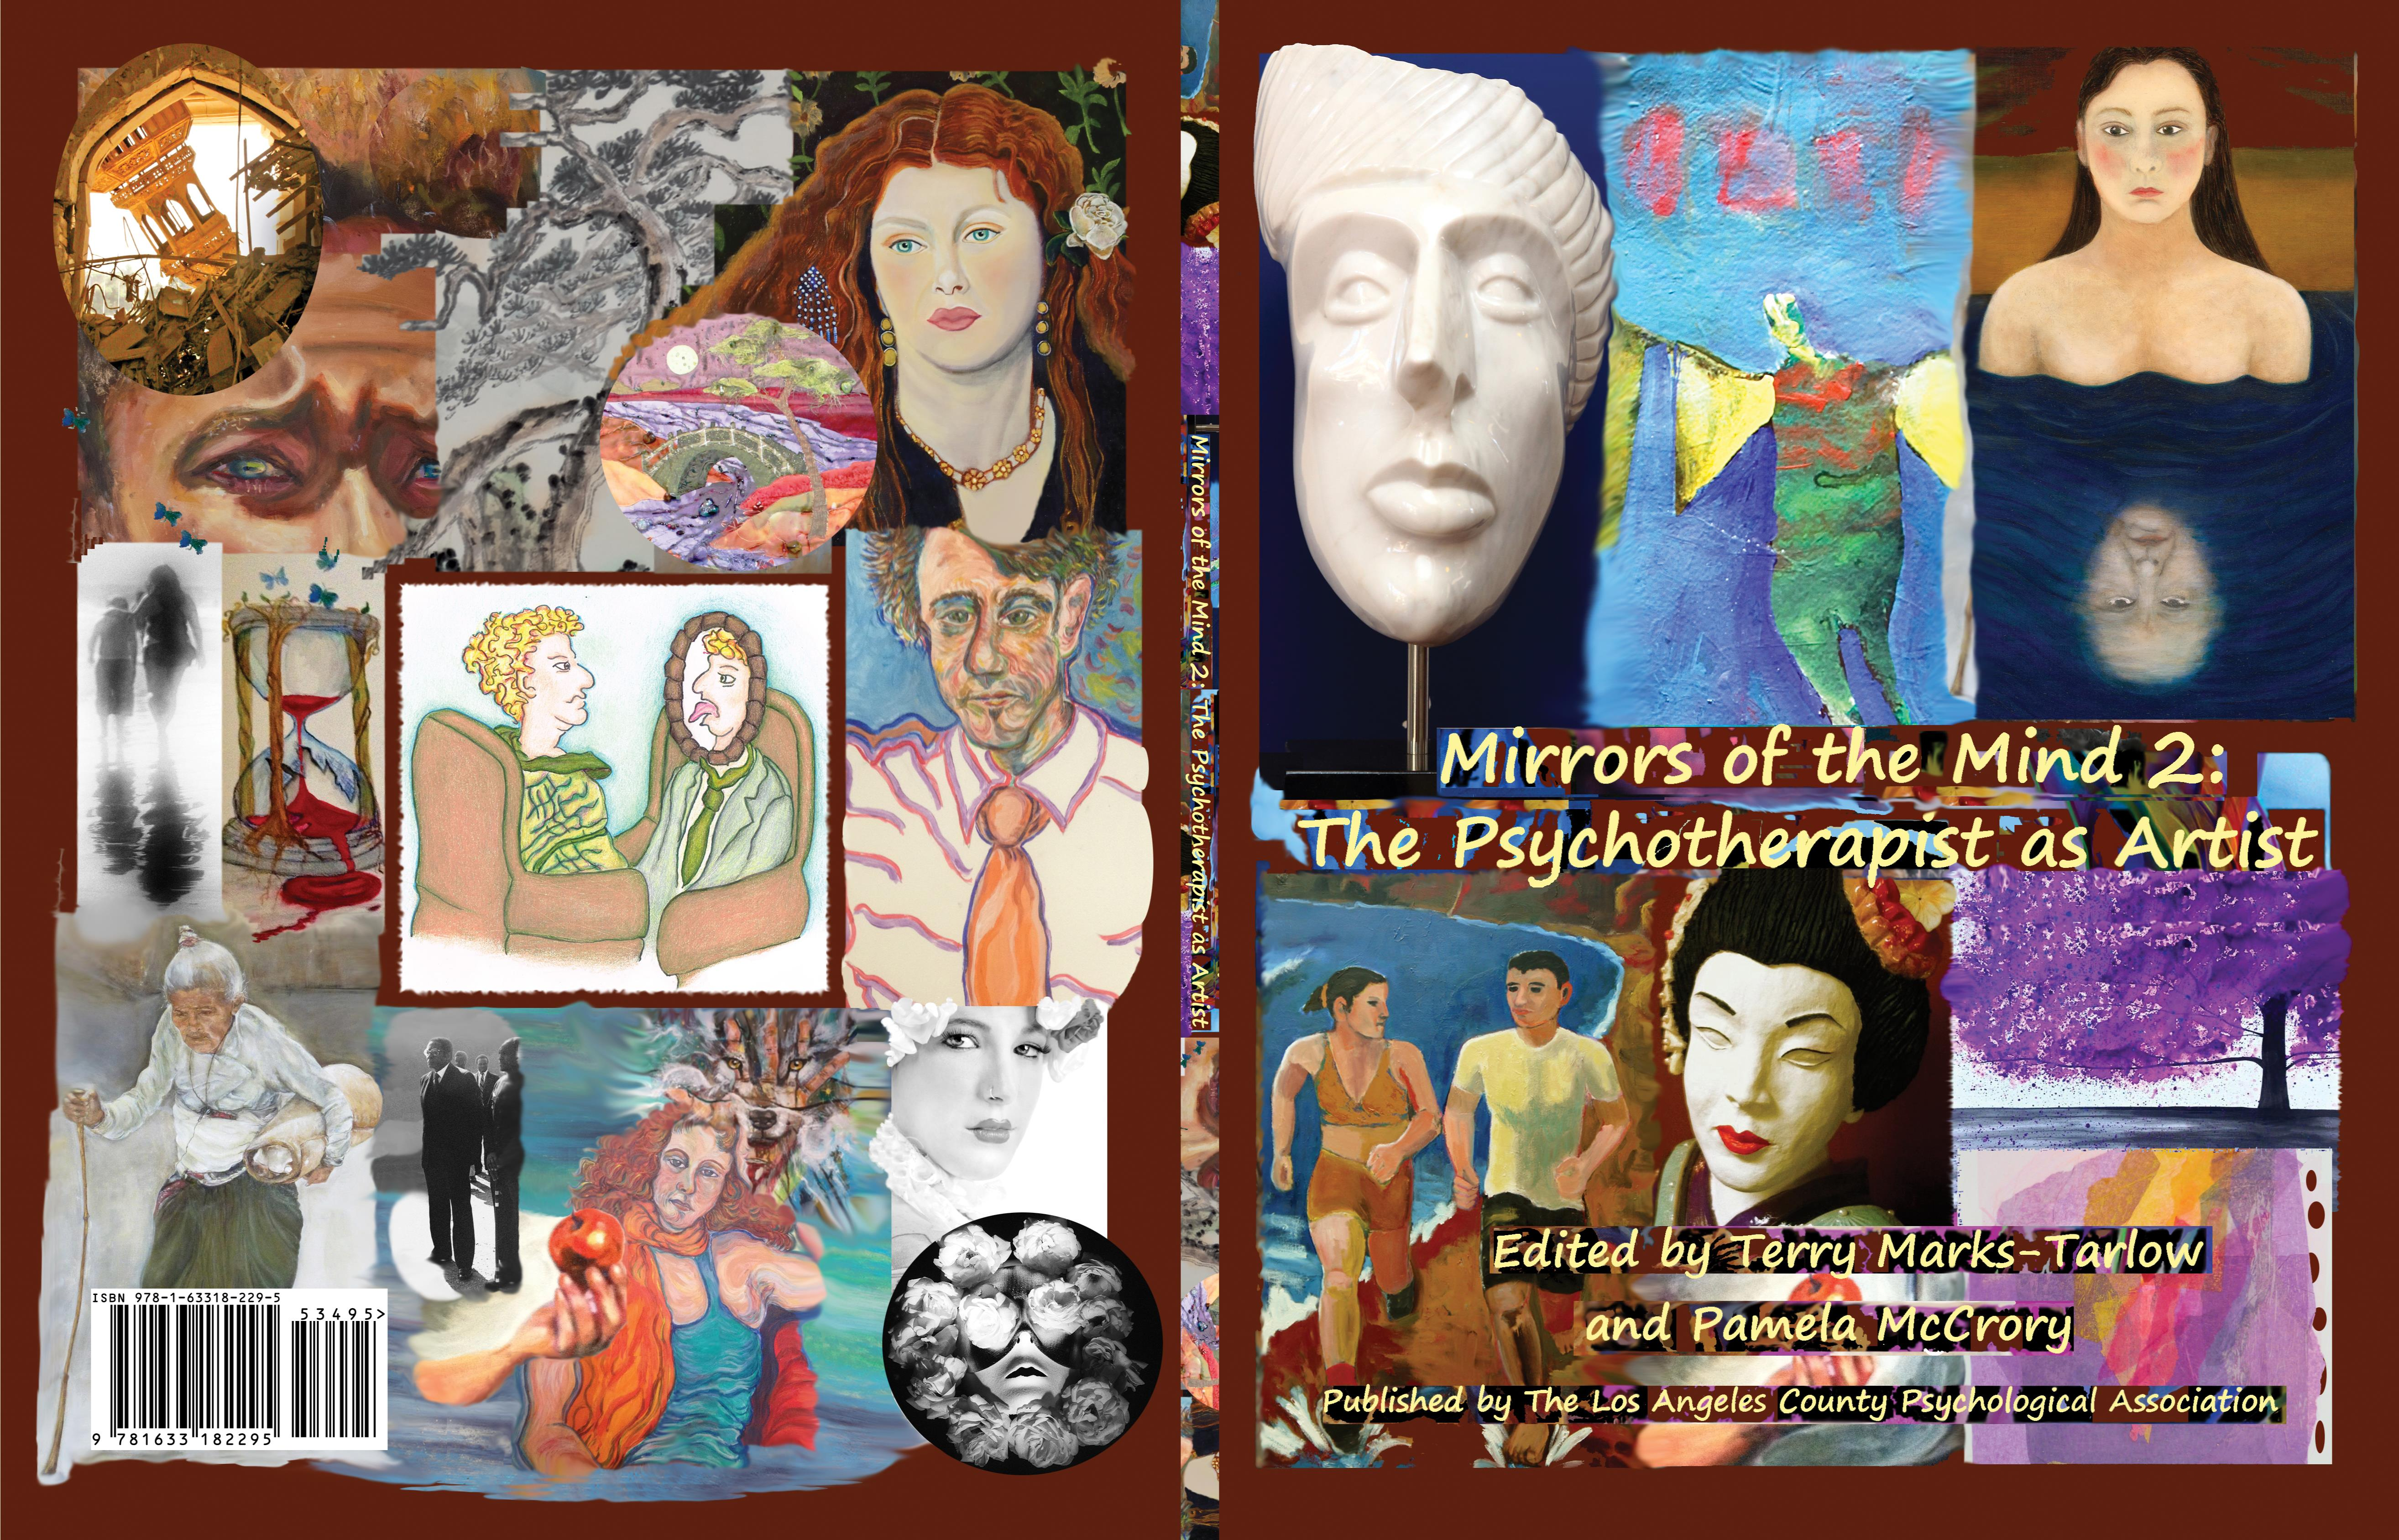 Mirrors of the Mind 2: The Psychotherapist as Artist cover image